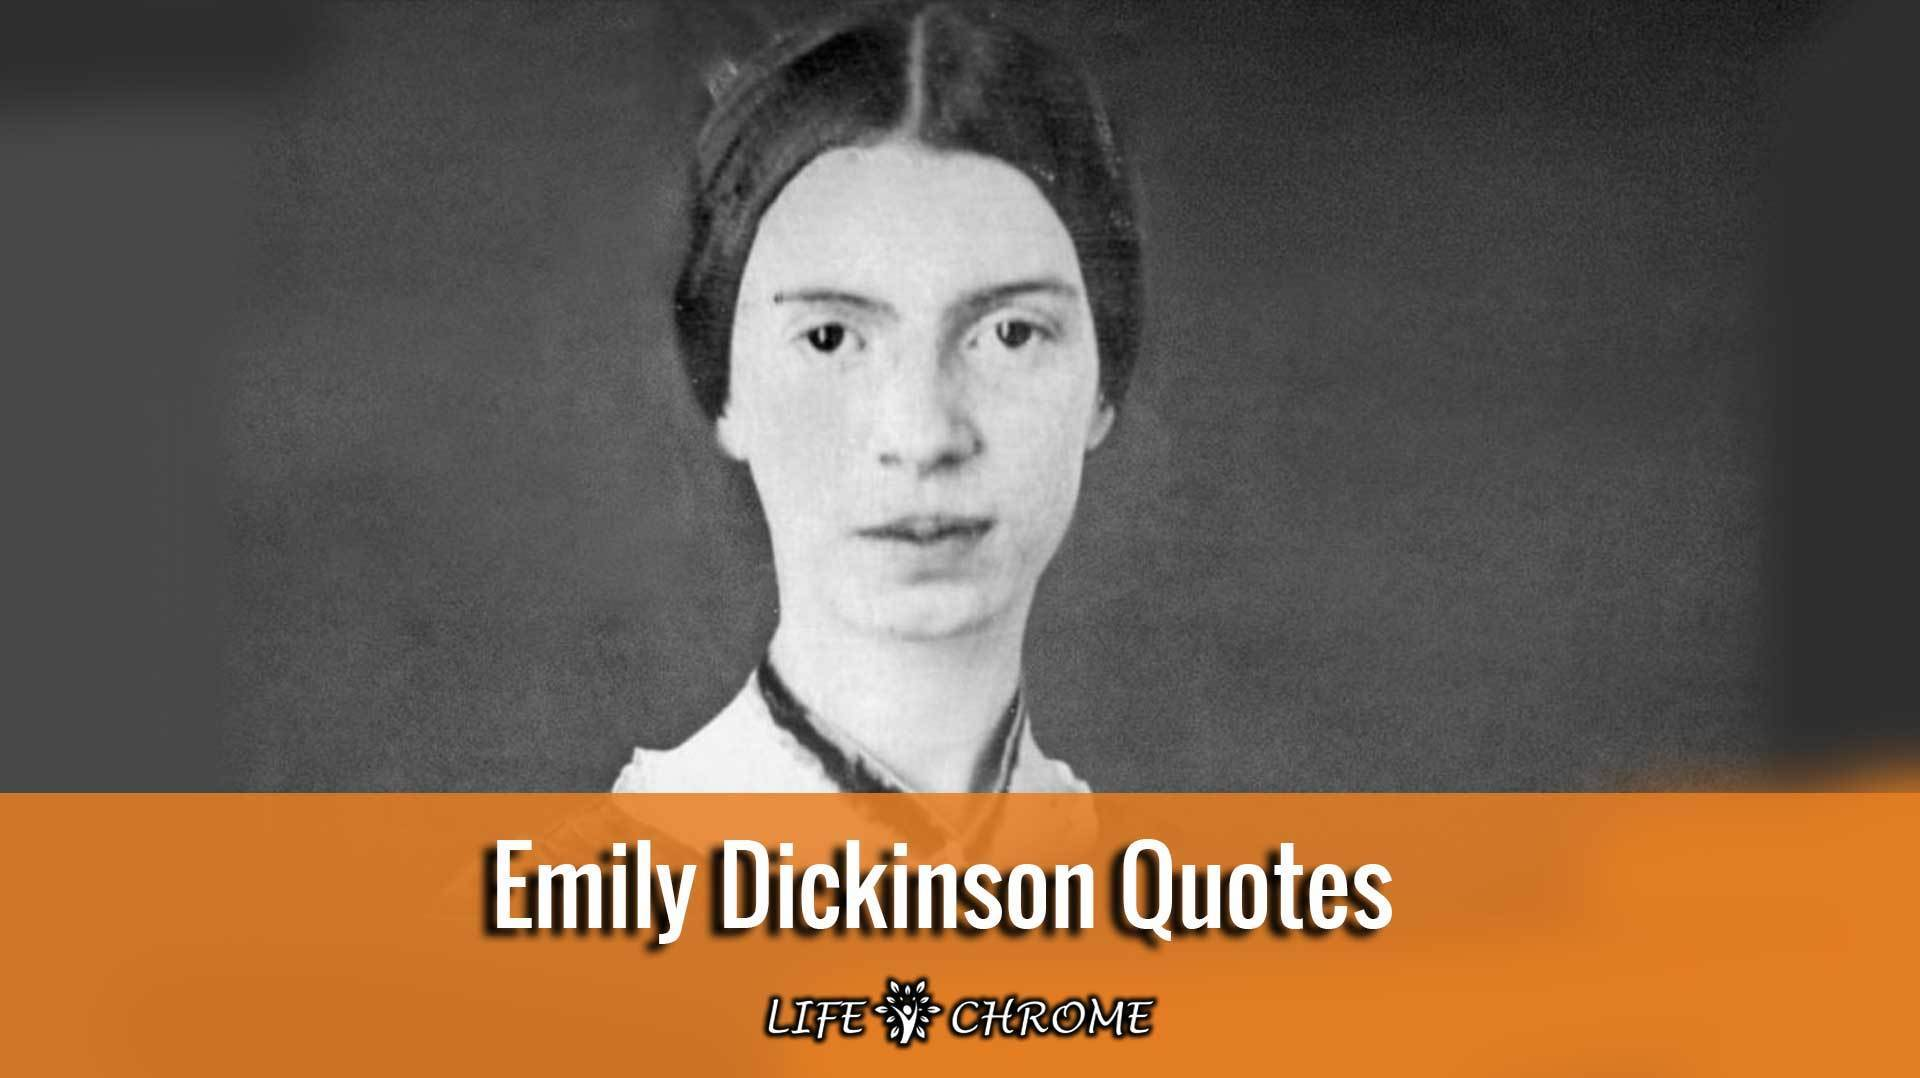 Emily Dickinson Quotes